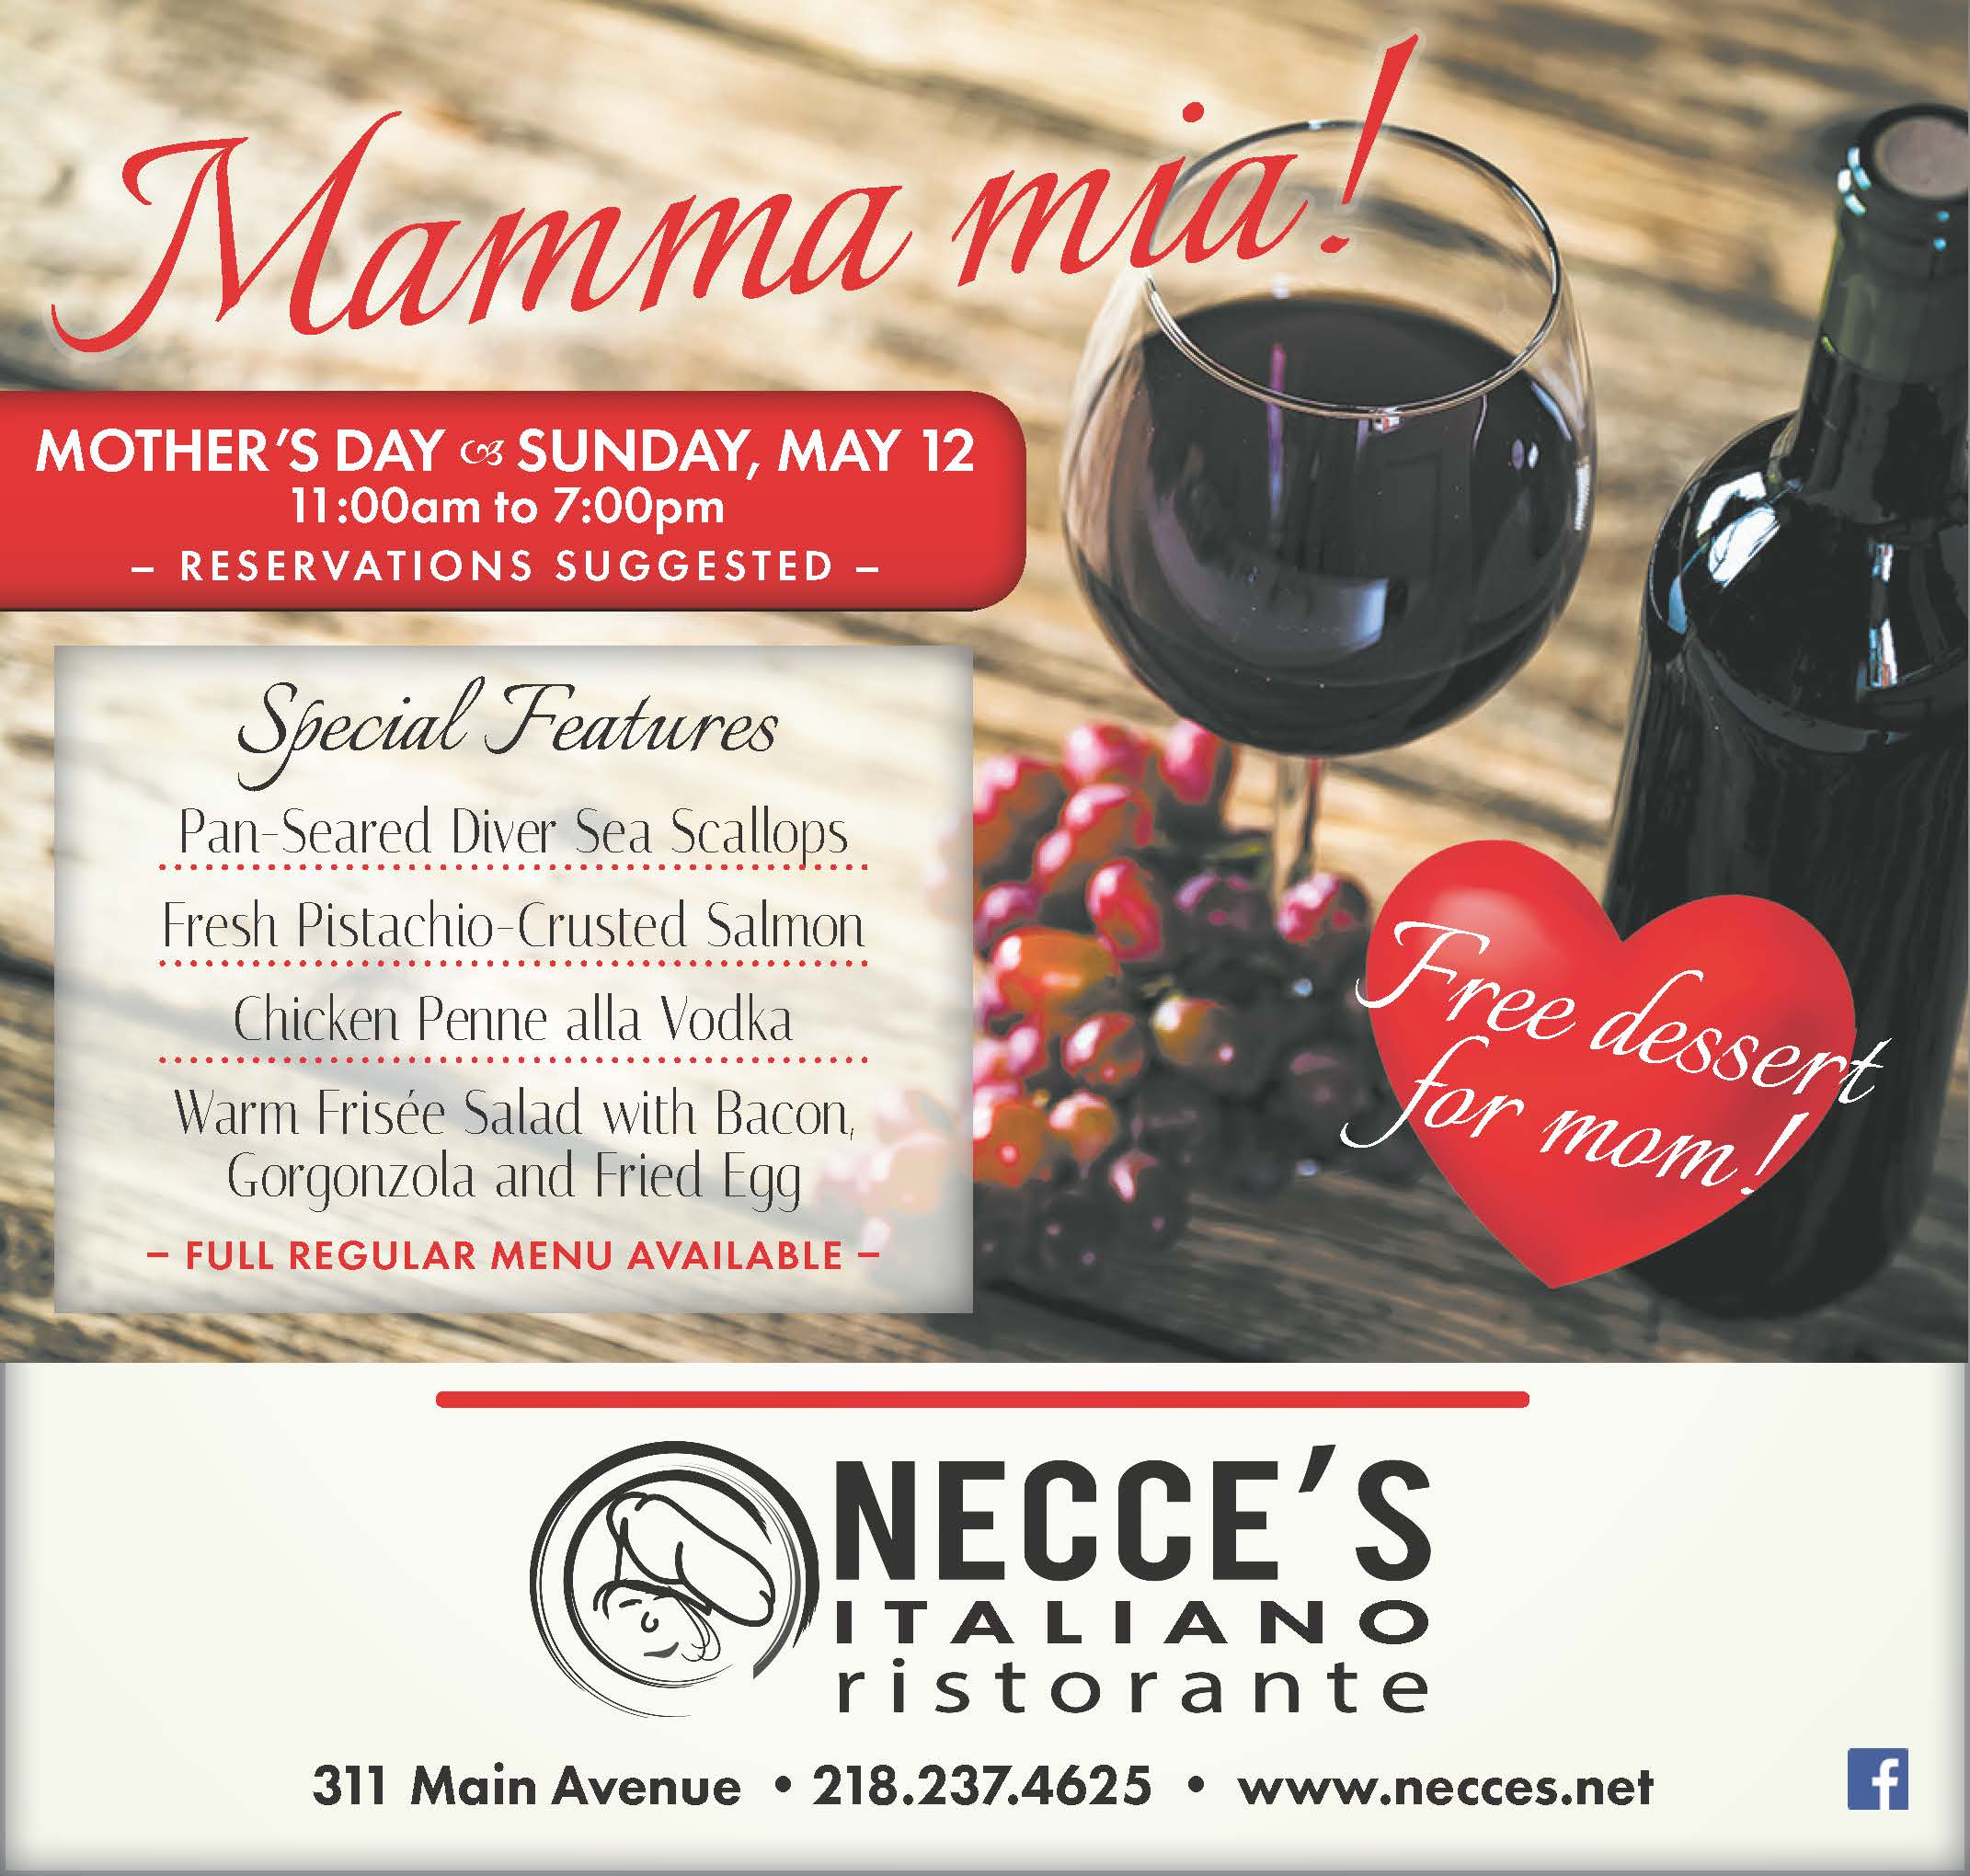 Easter Celebration at Necce's Ristorante